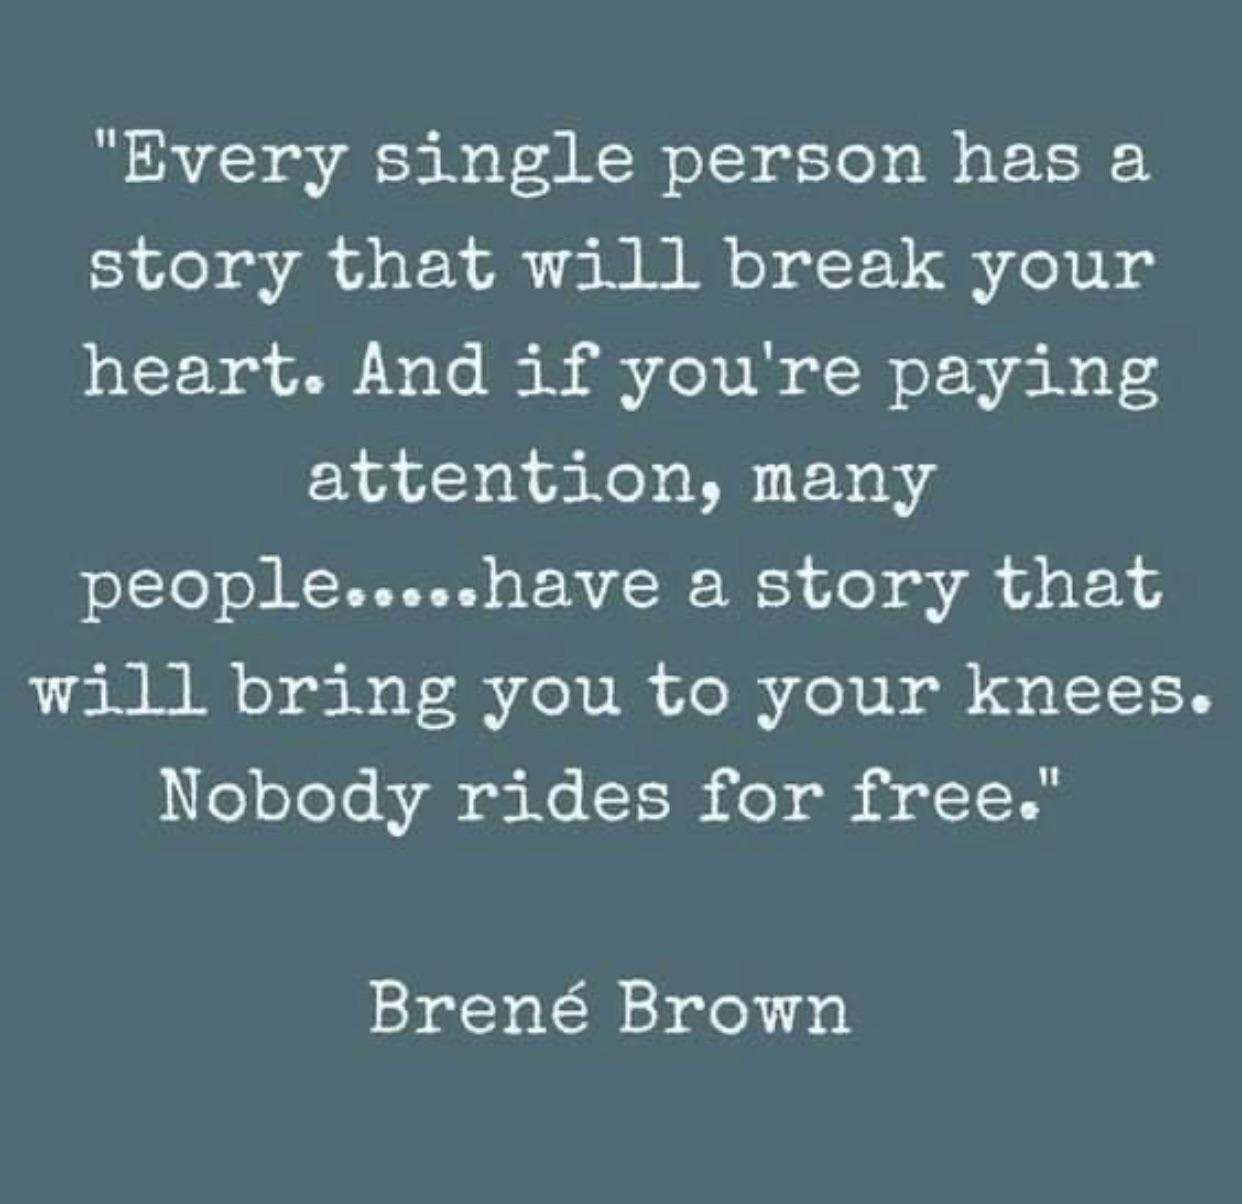 [Image] Nobody rides for free.